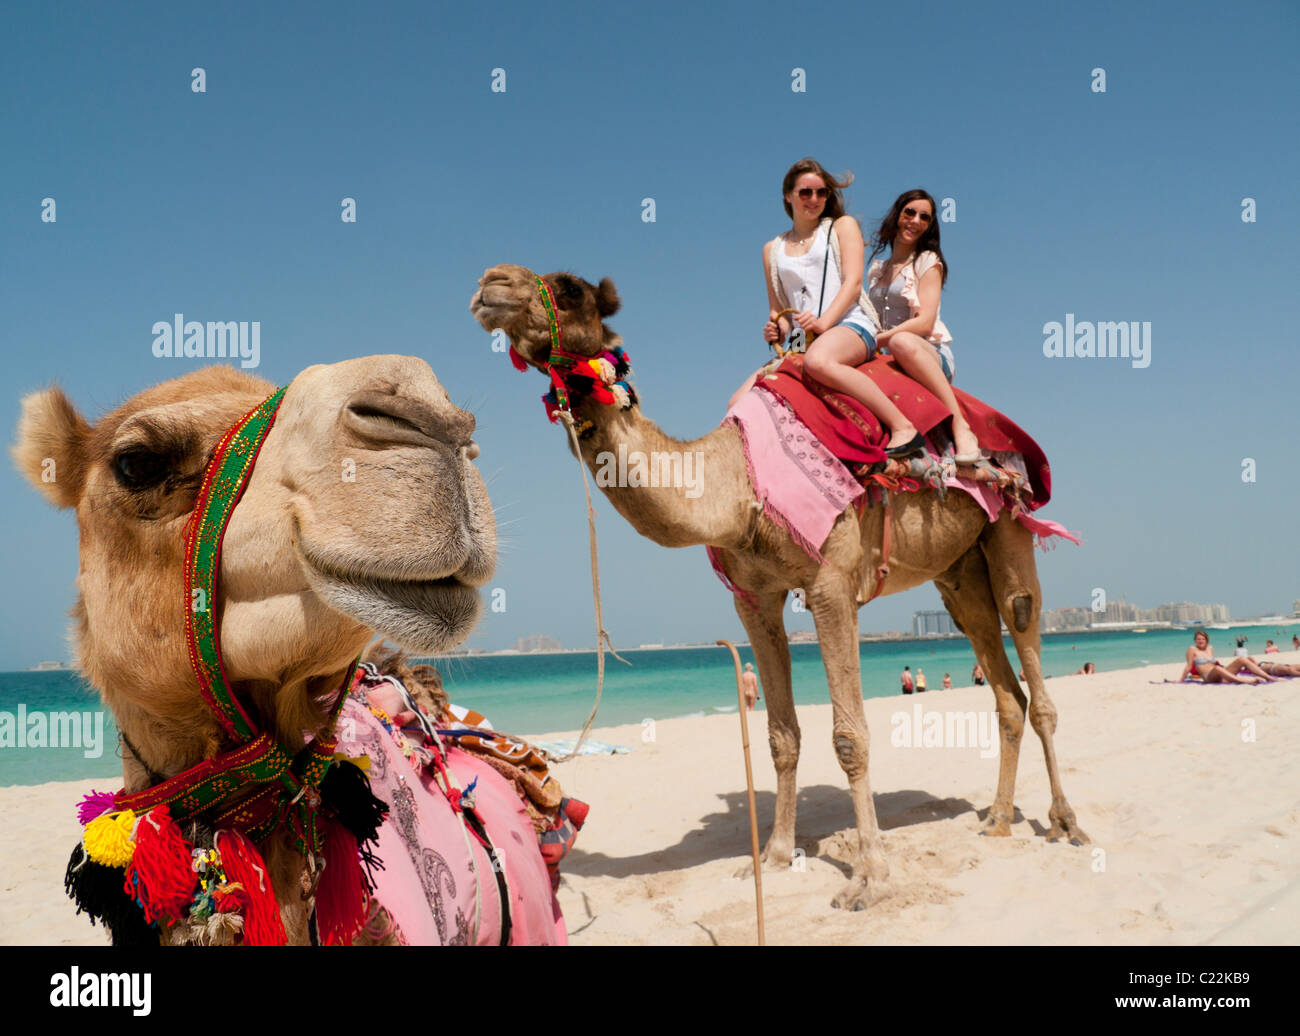 Two tourists having a camel ride on the beach in dubai in the uae two tourists having a camel ride on the beach in dubai in the uae thecheapjerseys Image collections